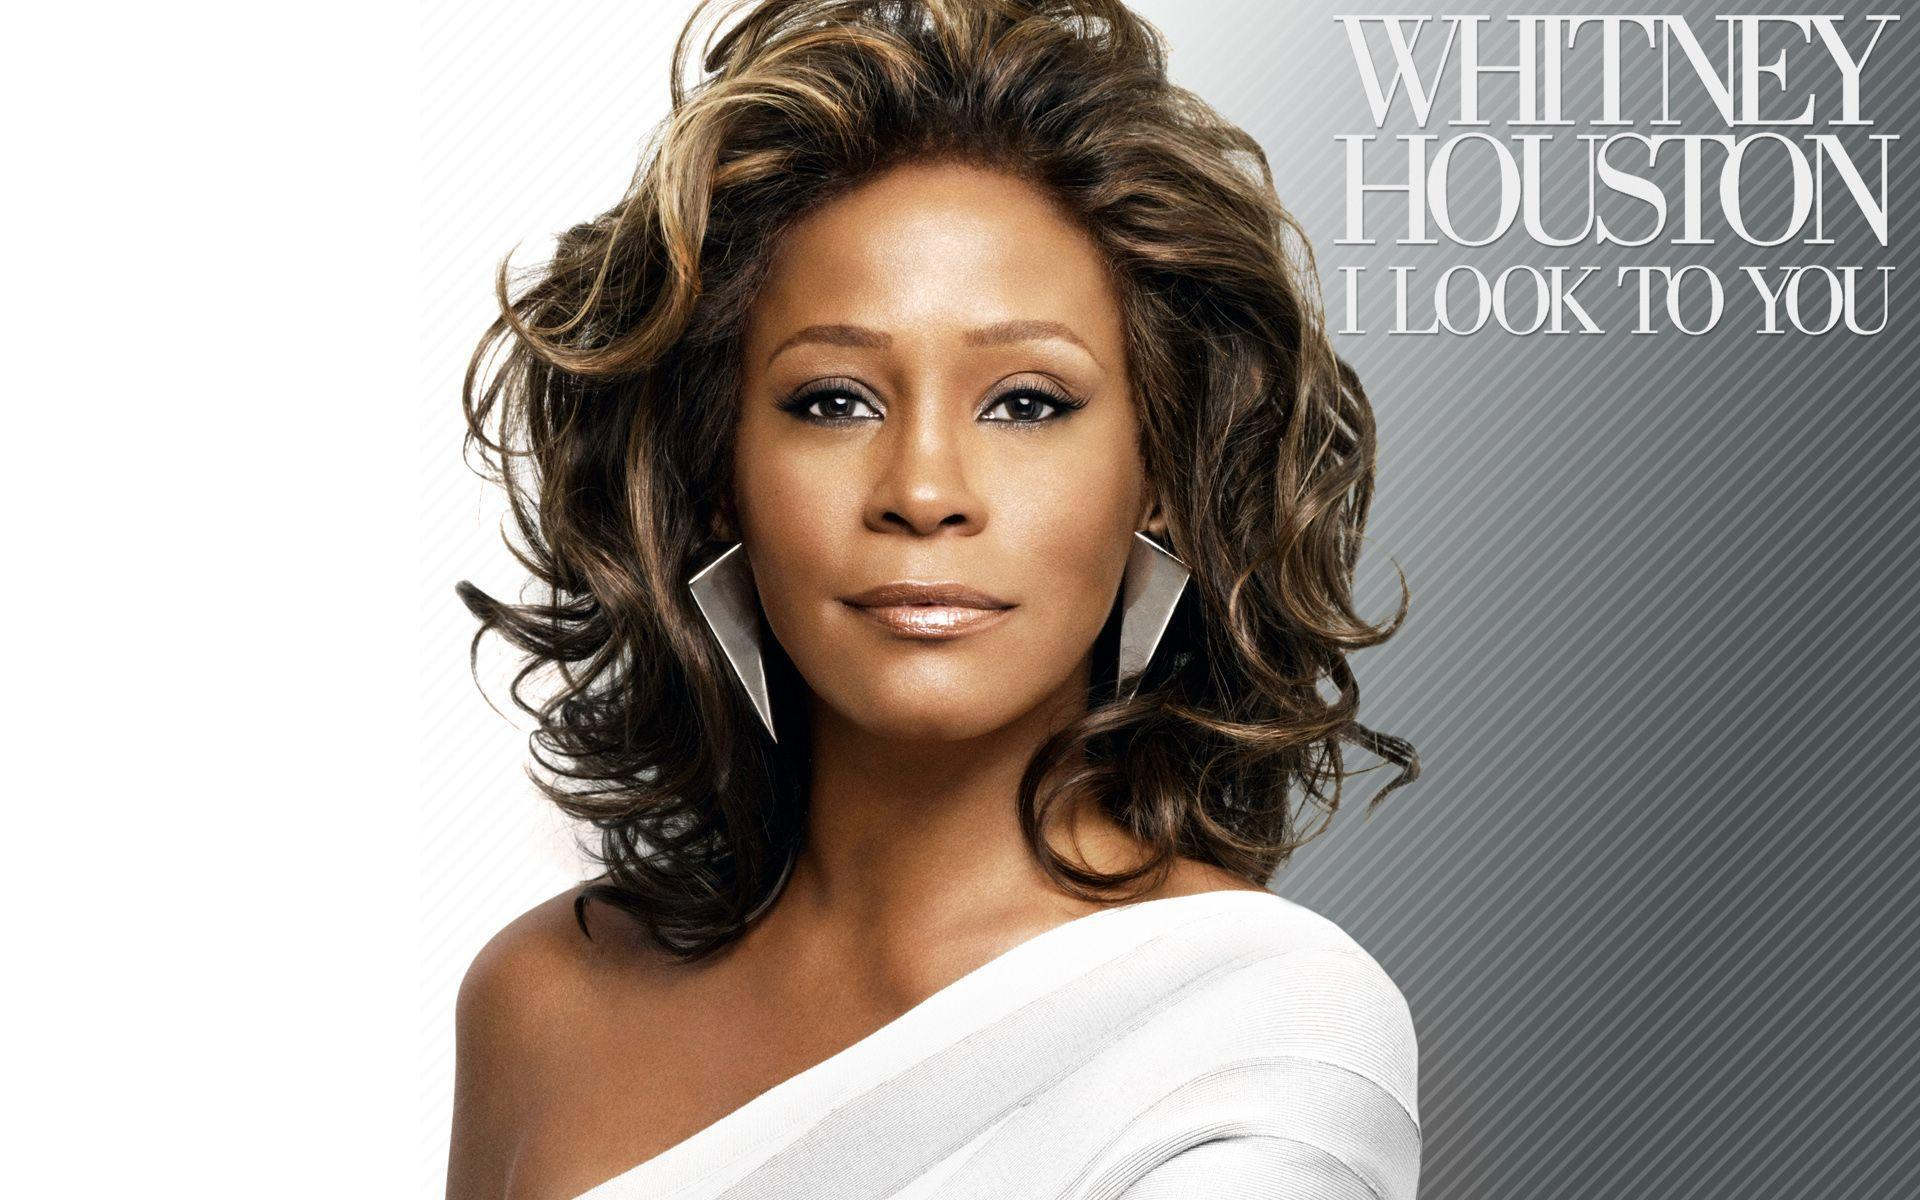 Whitney Houston Wallpapers for PC